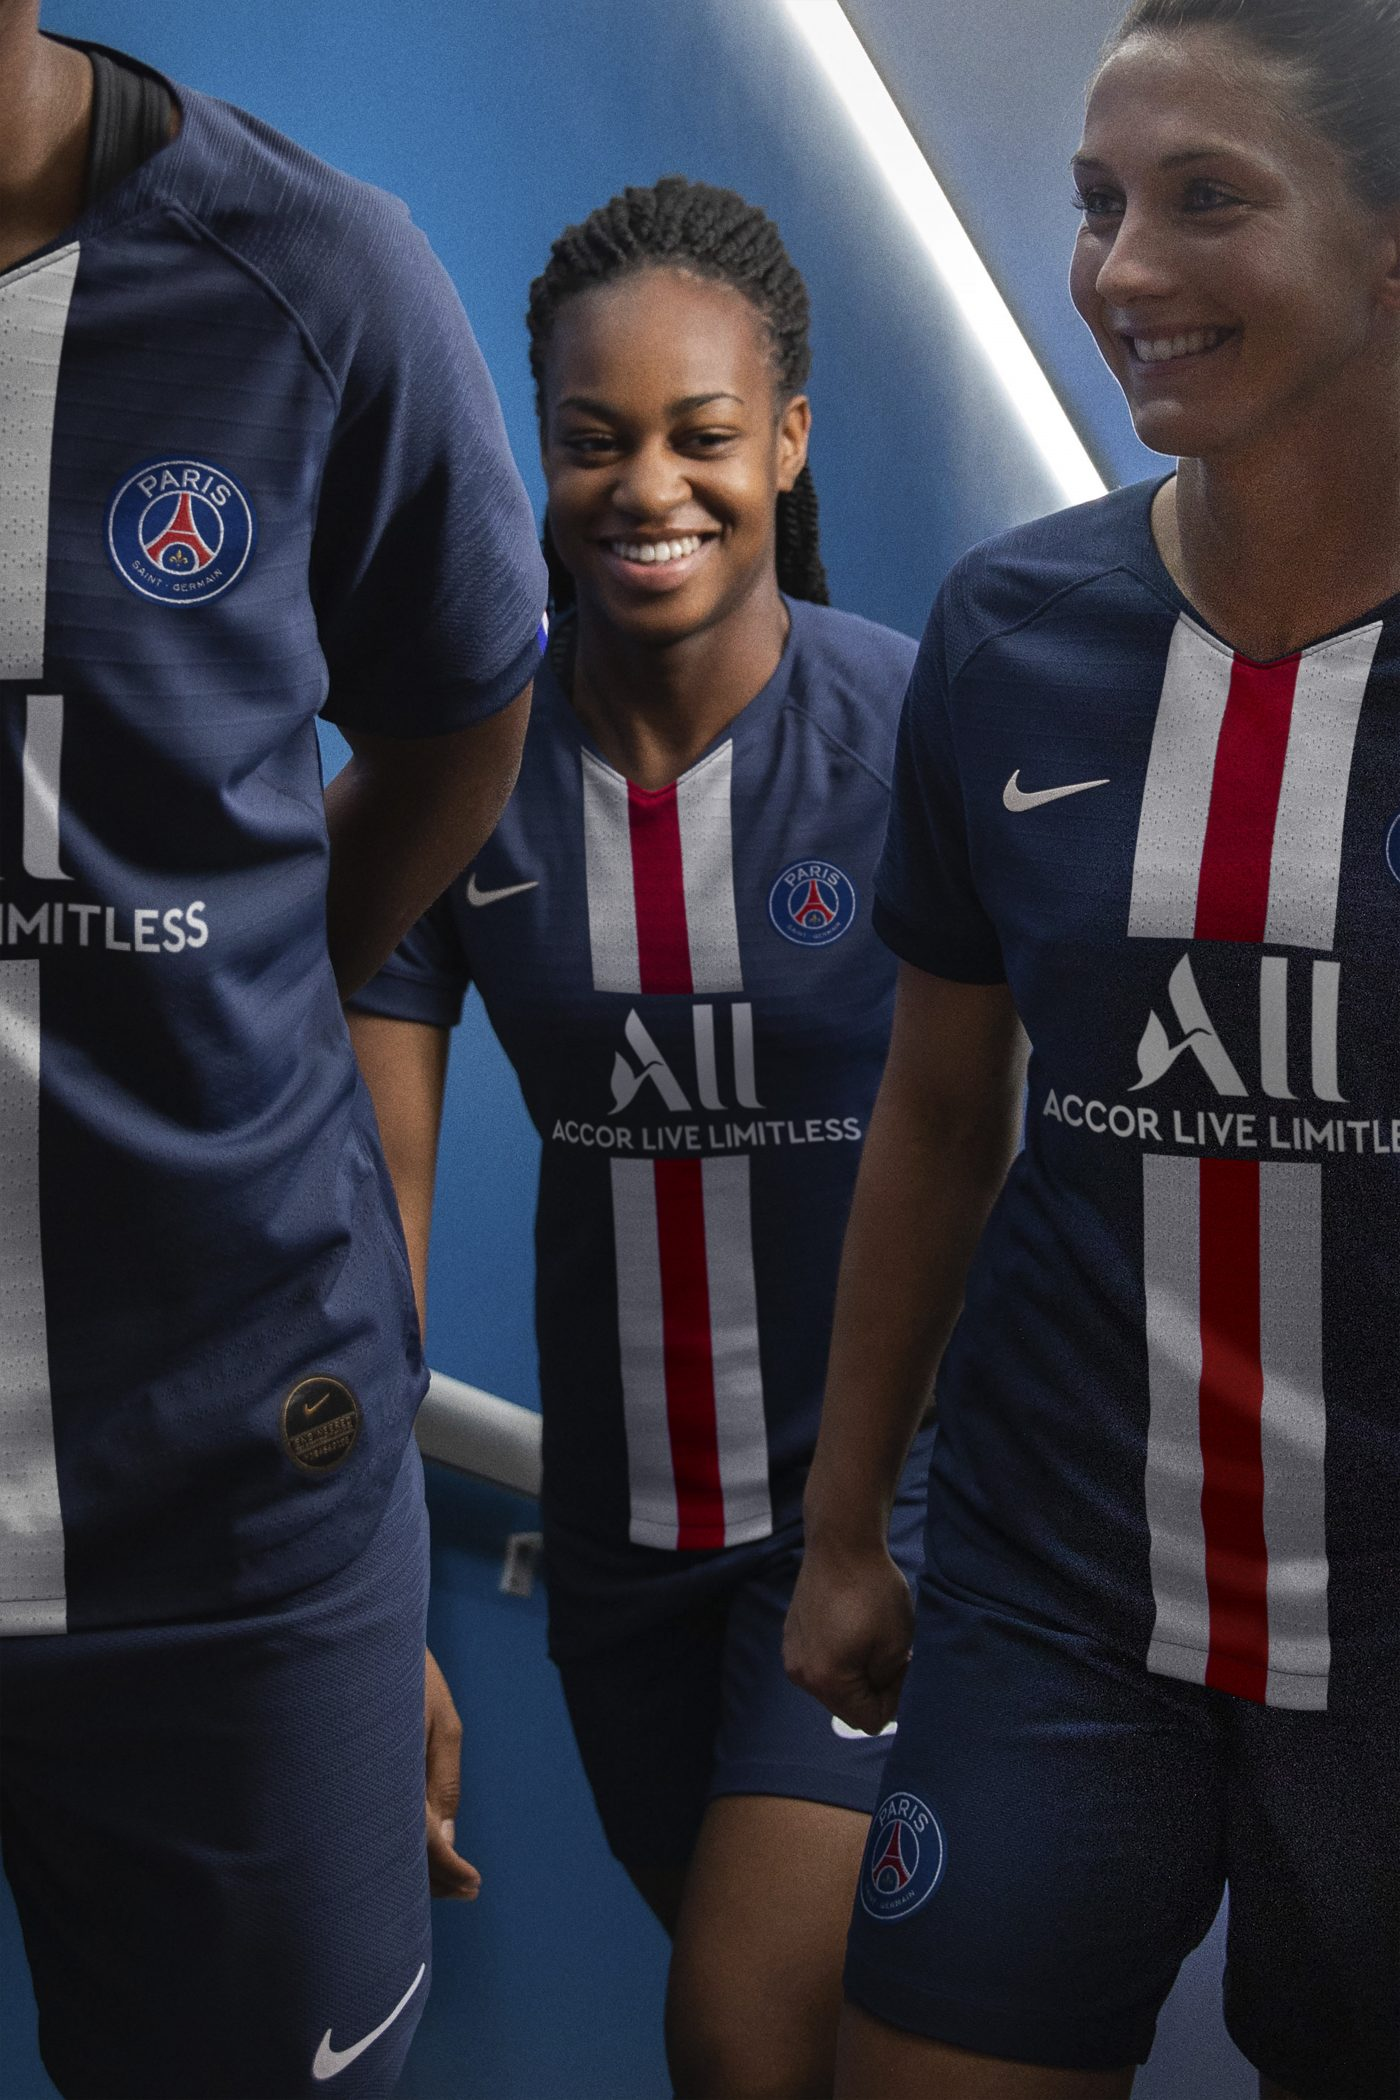 maillot-domicile-paris-saint-germain-psg-2019-2020-nike-8